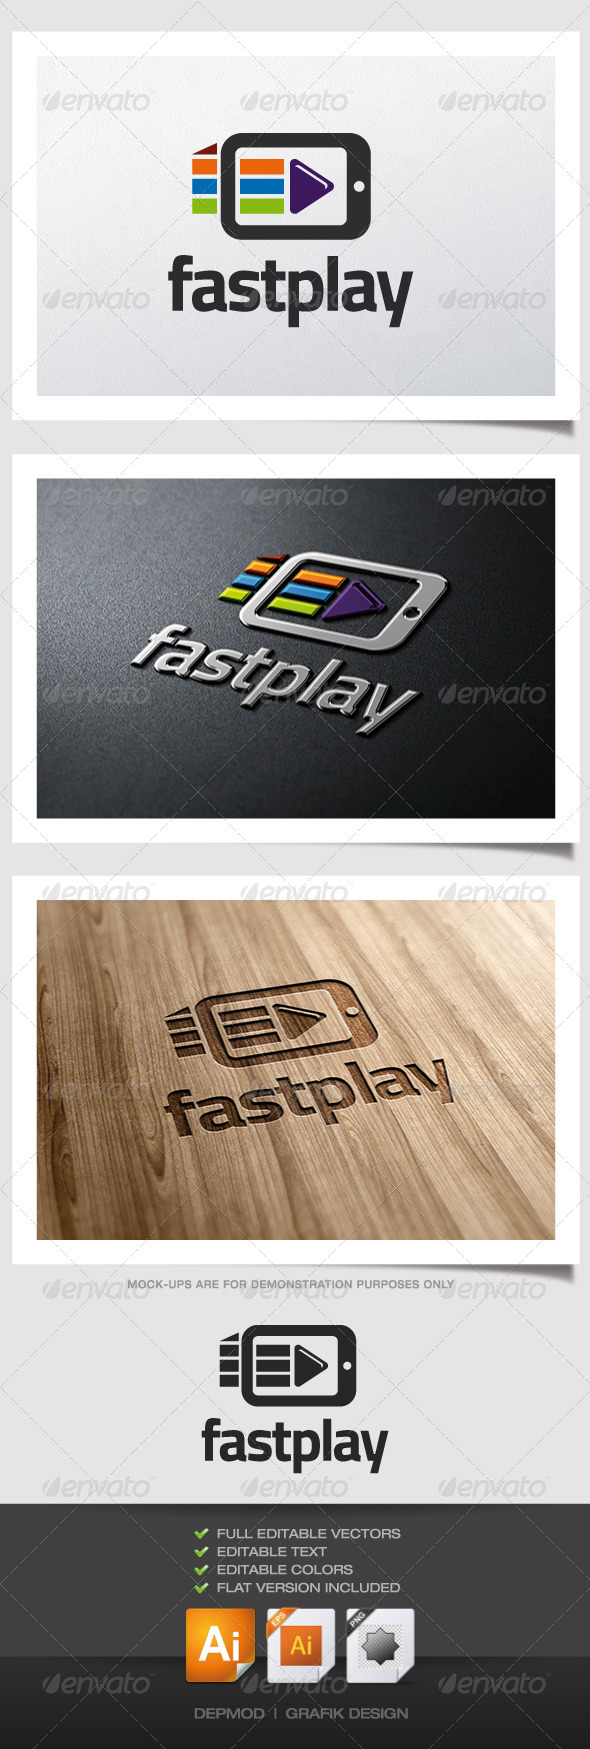 GraphicRiver Fastplay Logo 5210820